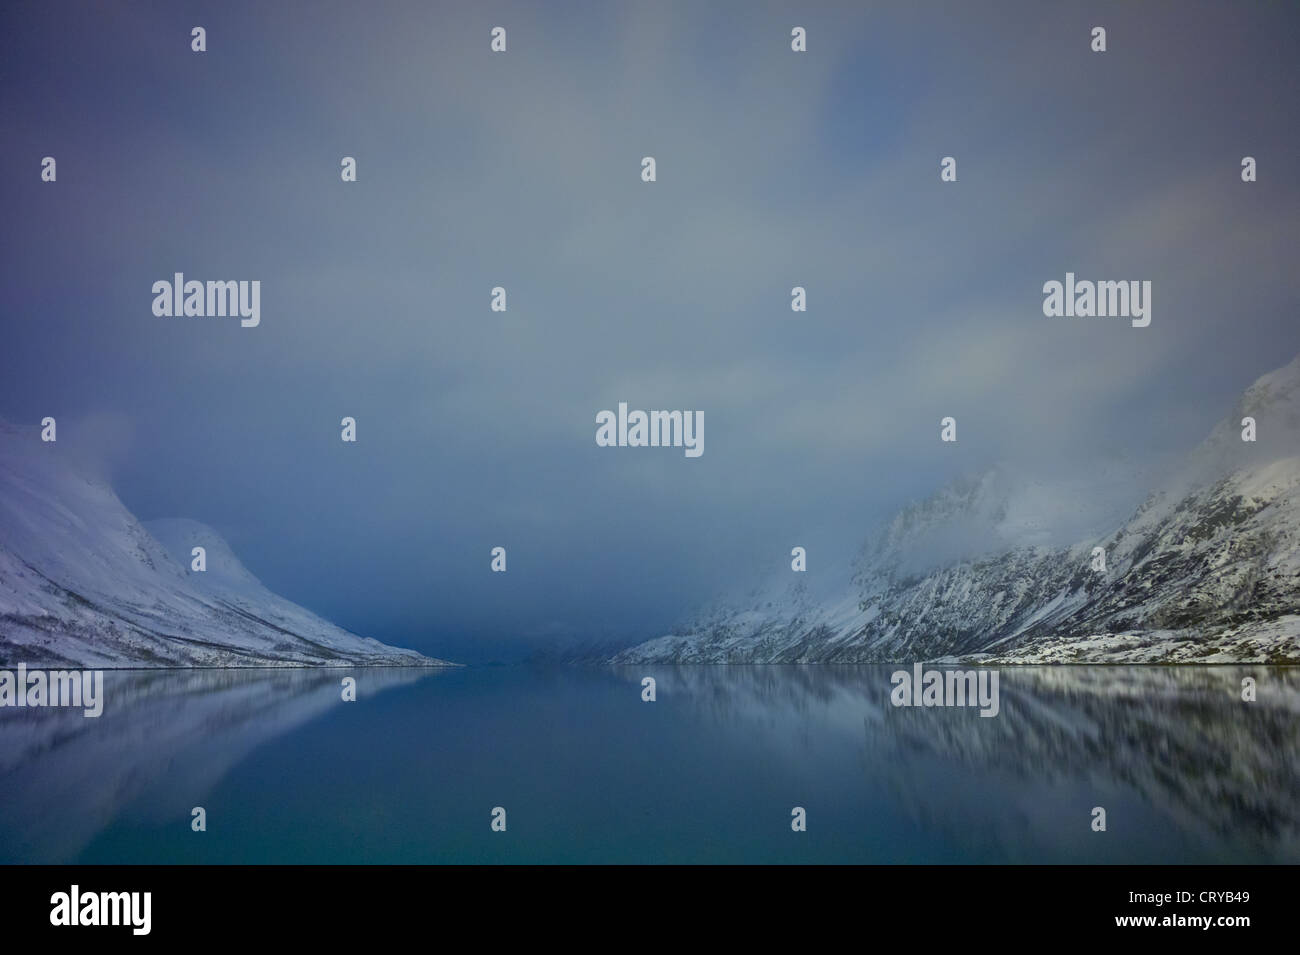 Arctic sky and landscape at Ersfjordbotn on Klavoya Island near Tromso, Northern Norway - Stock Image